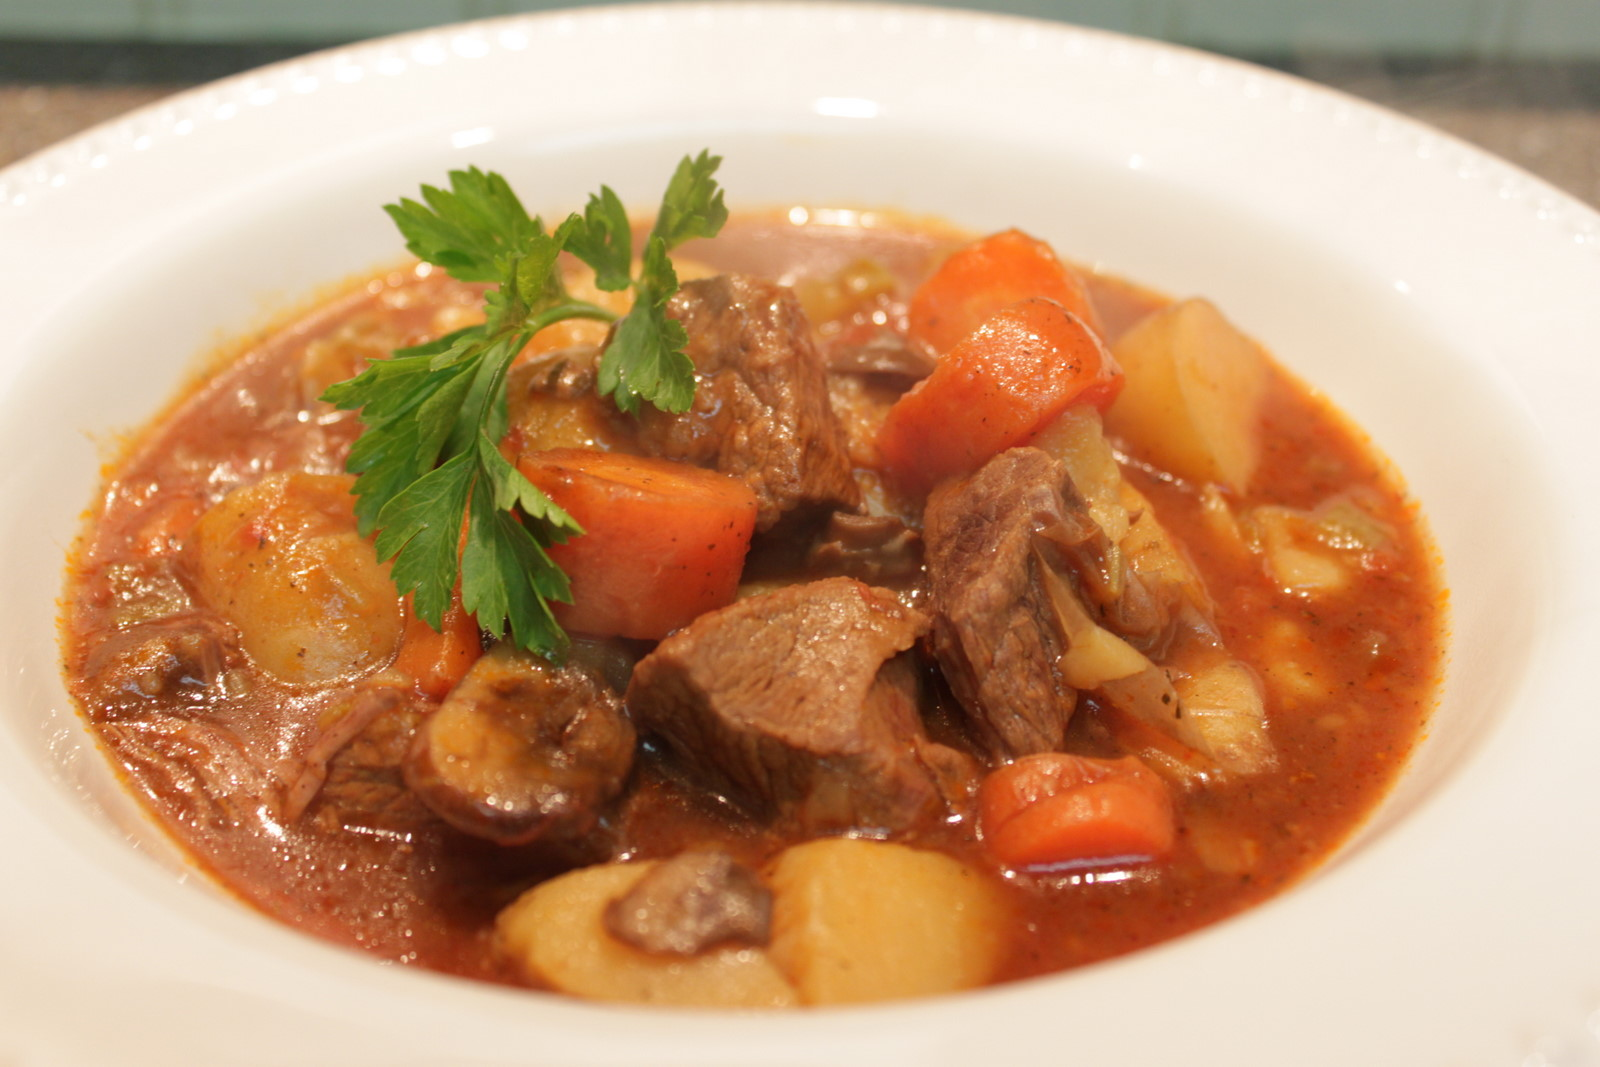 Wholesome Dinner Tonight: Slow Cooker Beef Stew {Gluten Free}